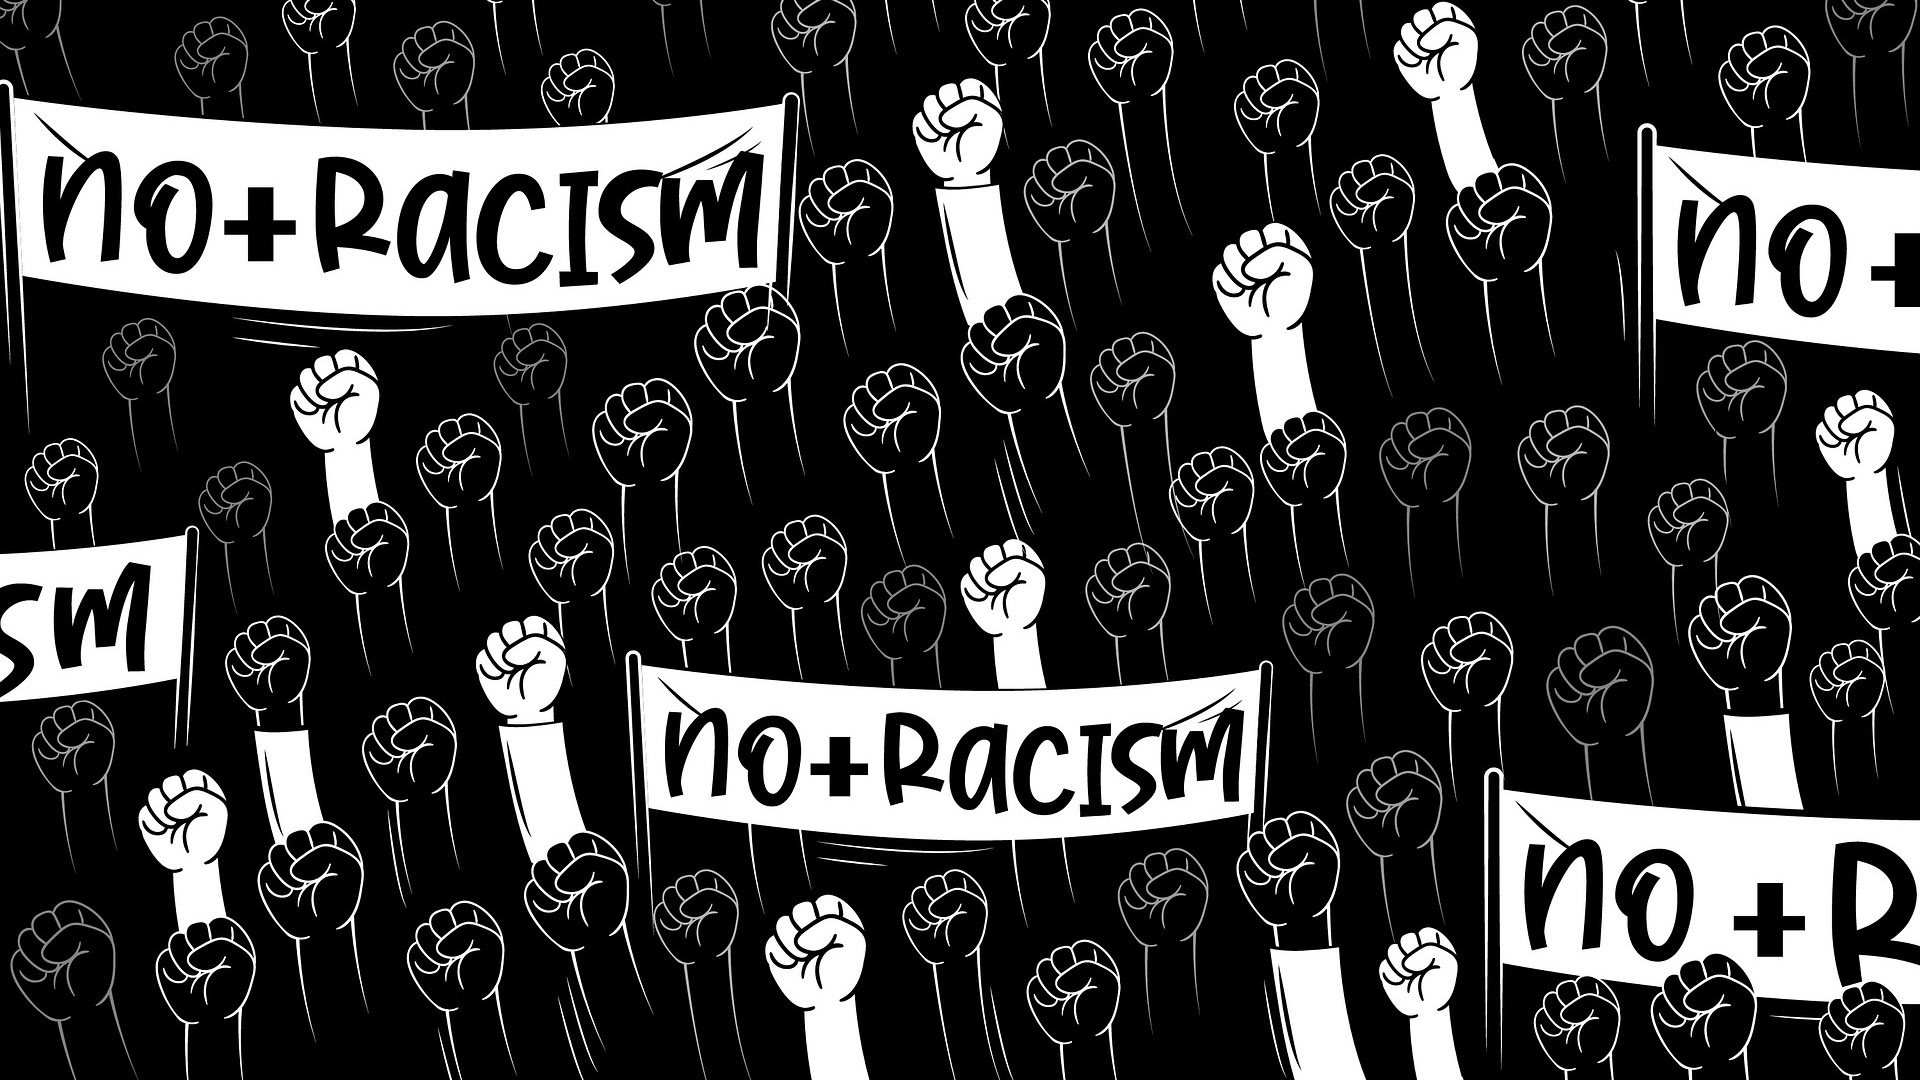 Equality and Diversity Graphics - No Racism Flag with Hands Raised